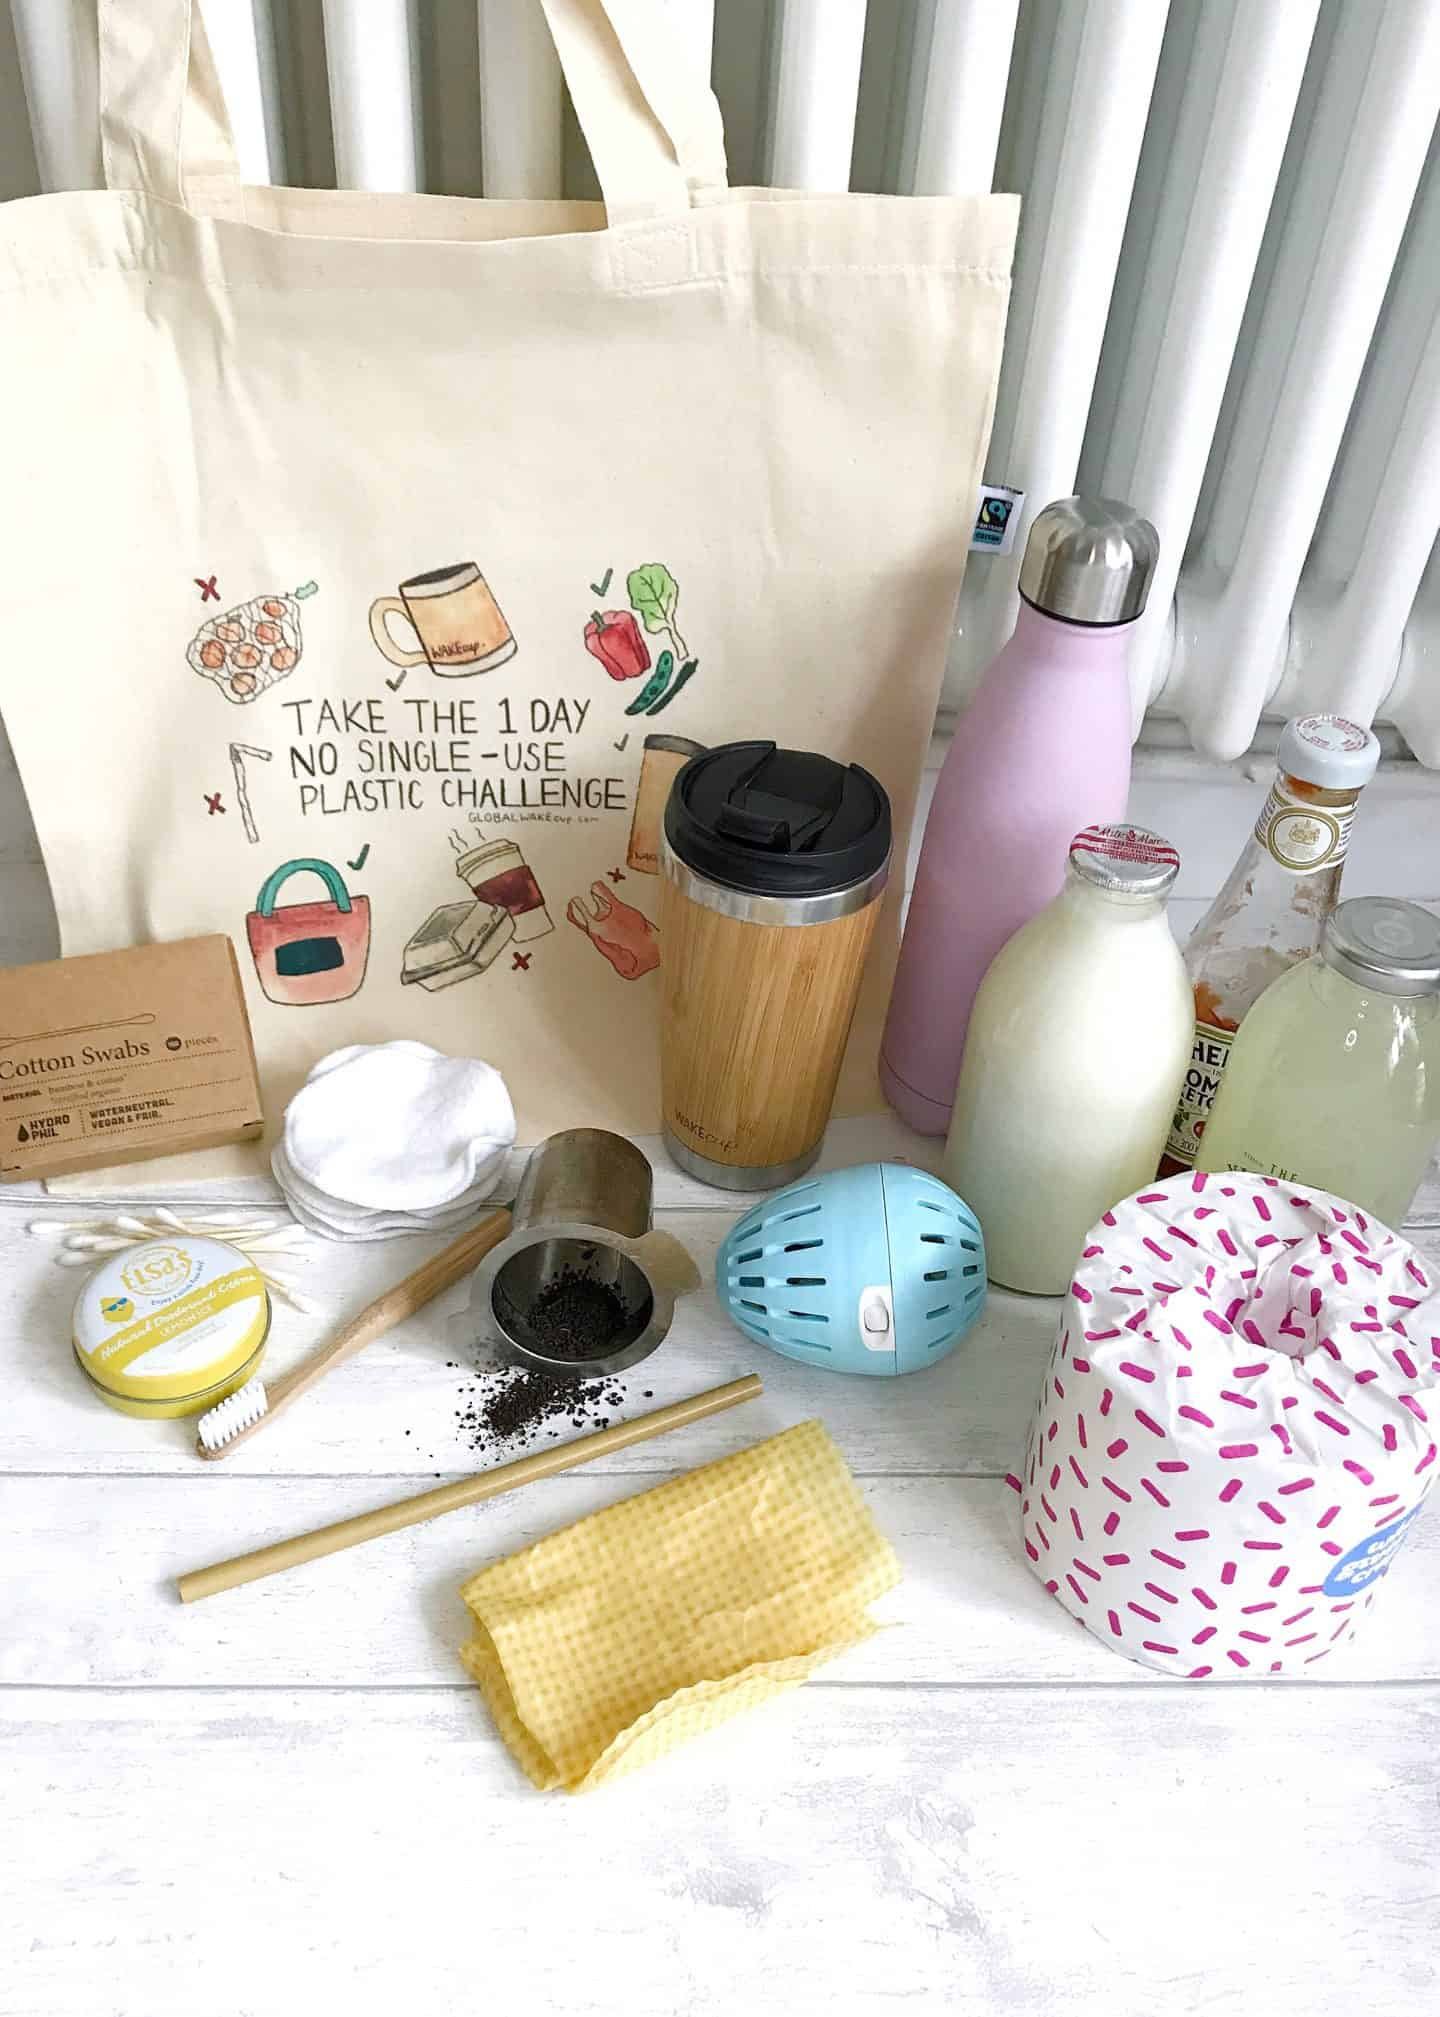 Will you complete The 1 Day No Single-Use Plastic Challenge?